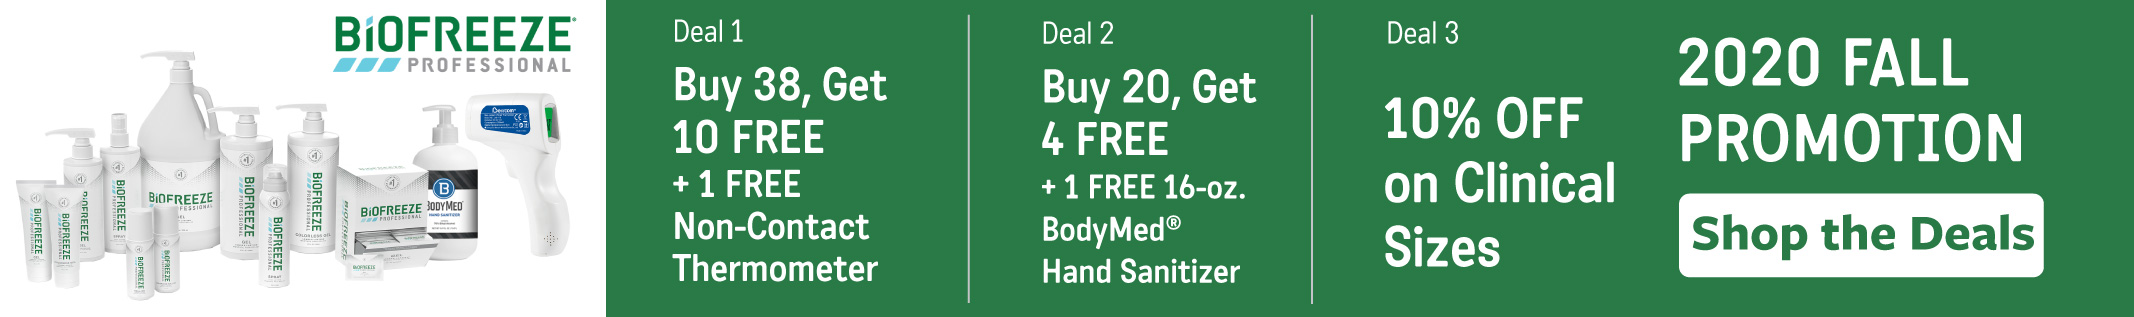 biofreeze fall sale with exclusive offer for free bodymed hand sanitizer